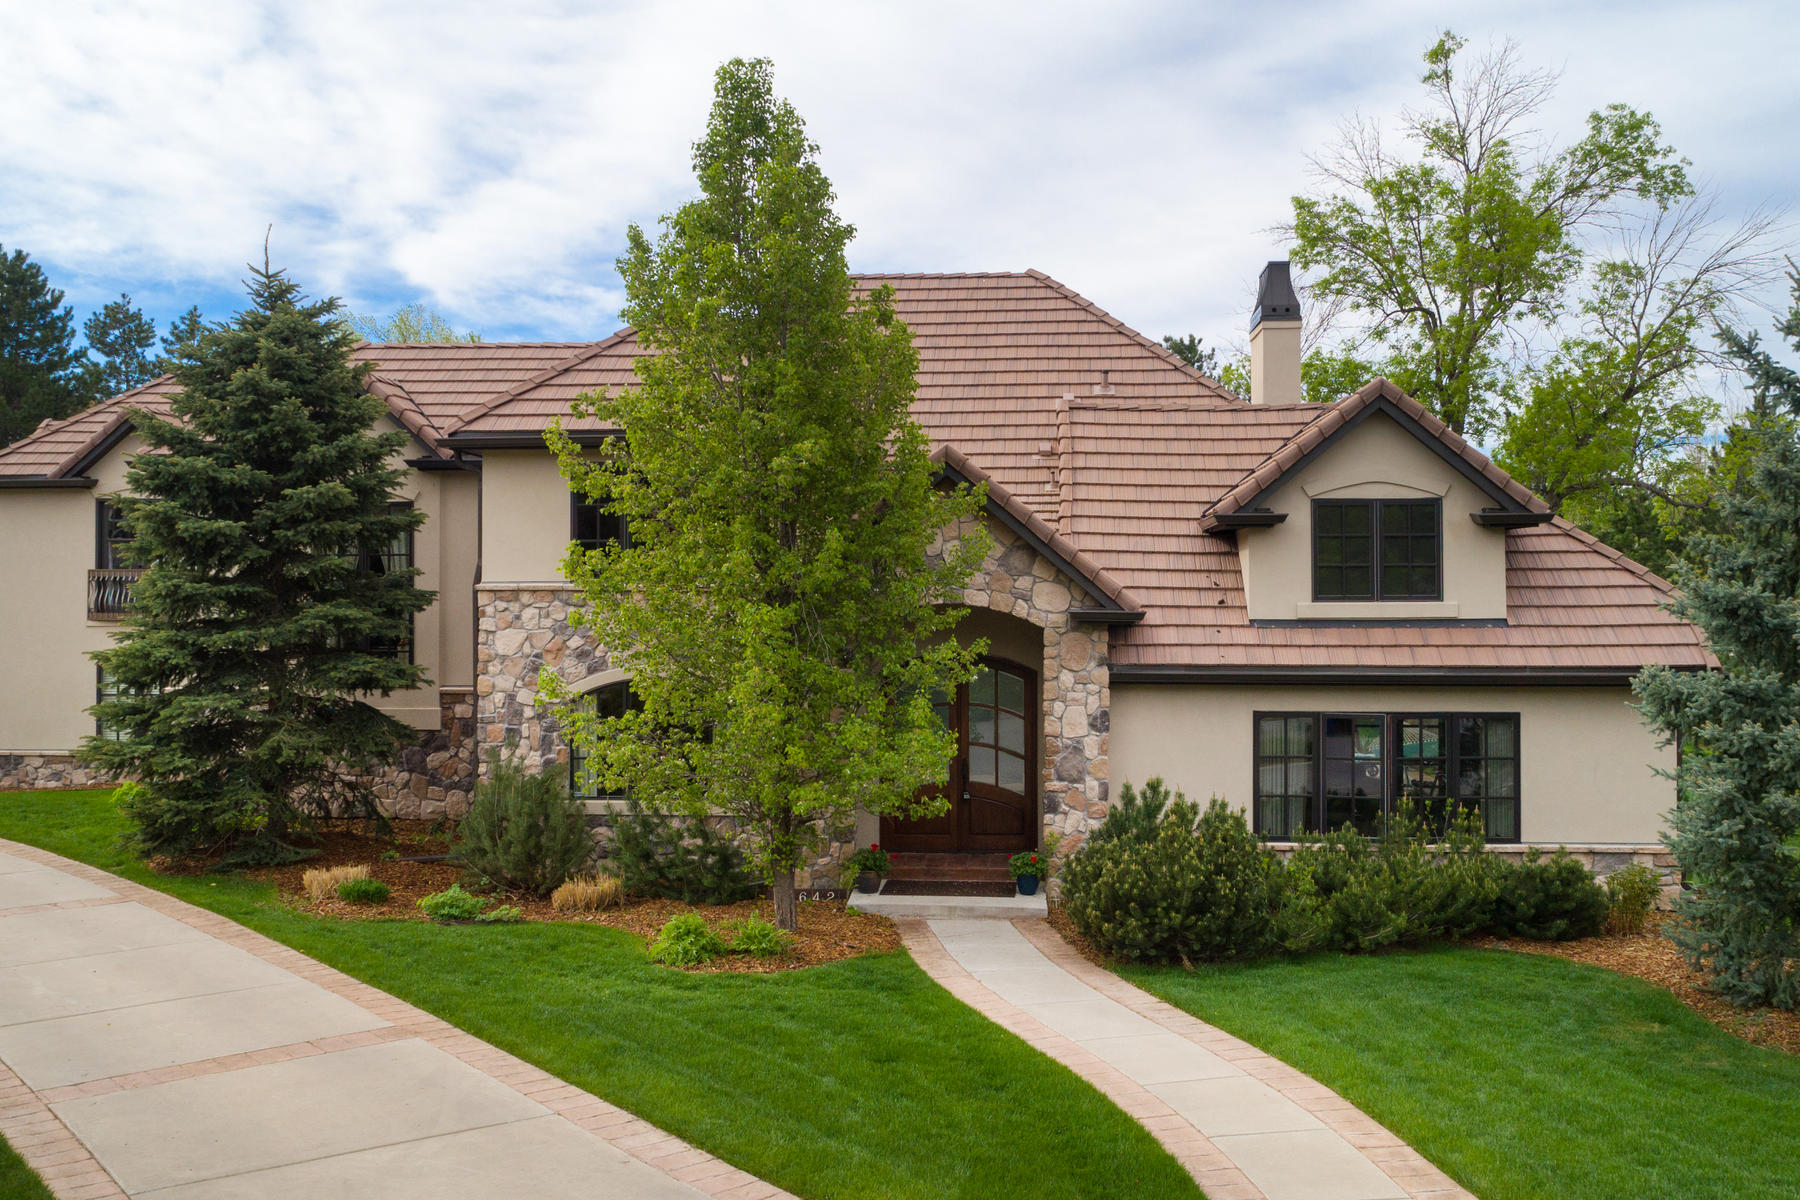 Single Family Home for Active at 9642 East Orchard Drive 9642 East Orchard Drive Greenwood Village, Colorado 80111 United States